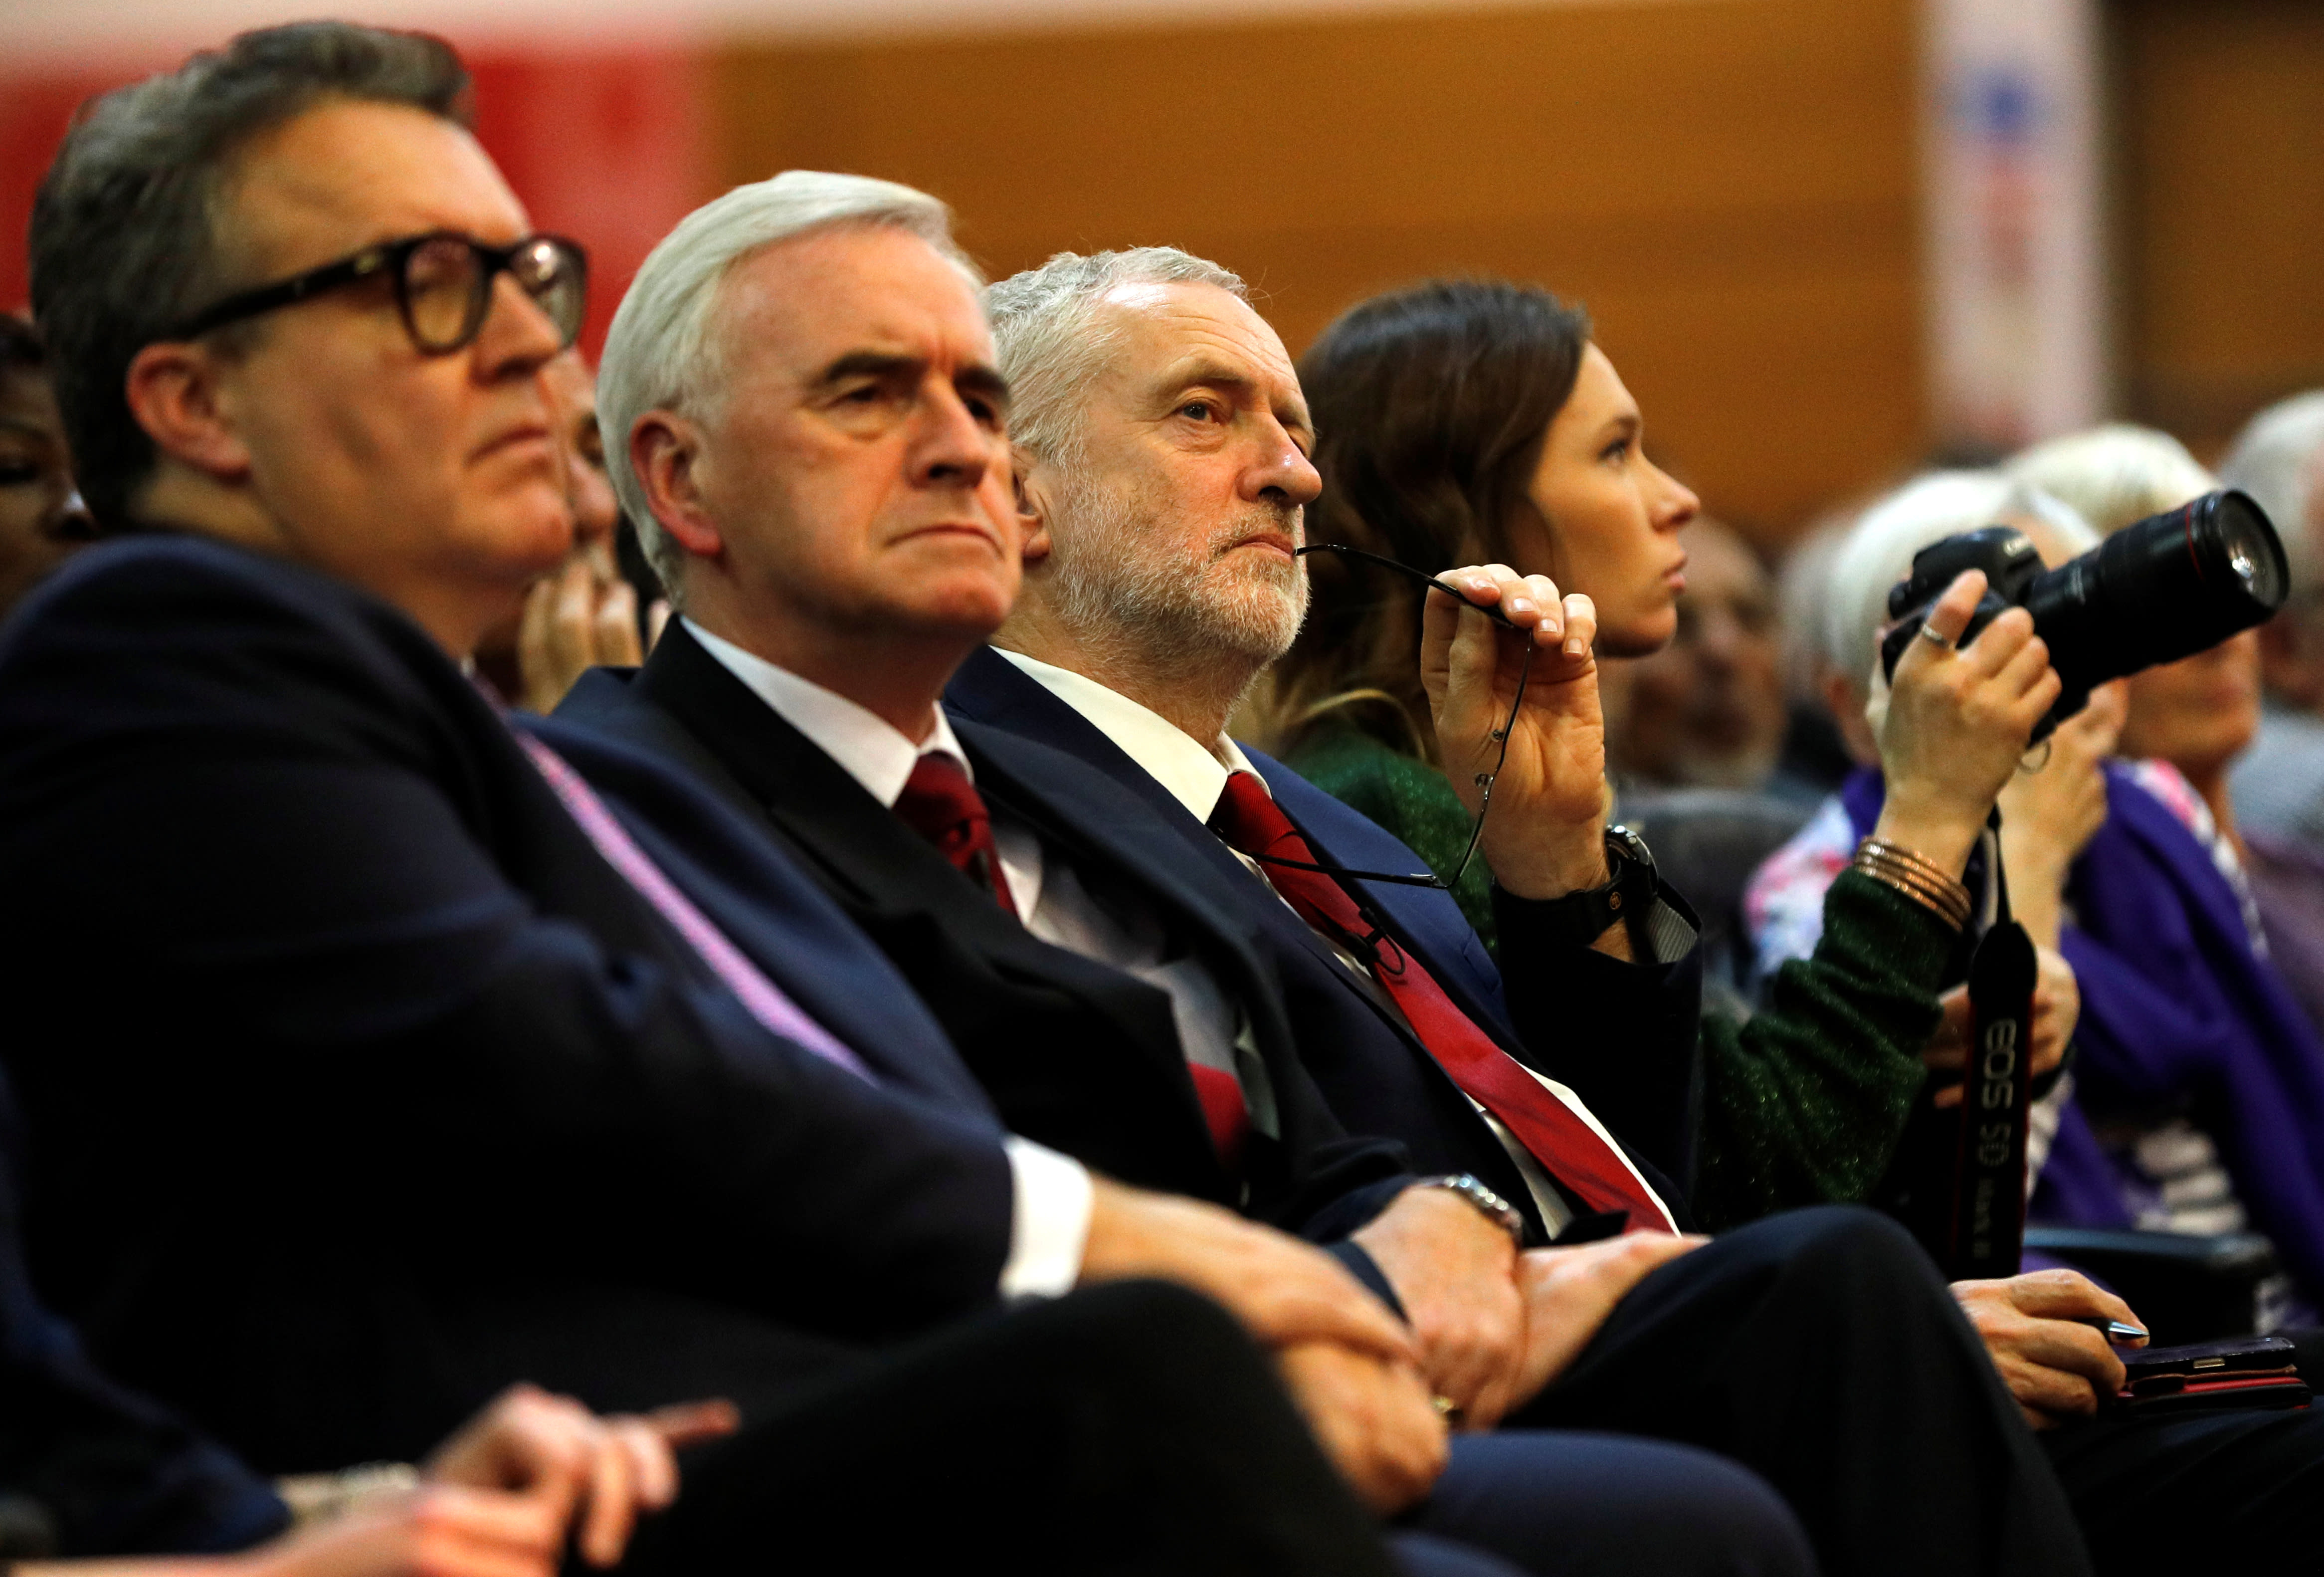 Leader of the opposition Jeremy Corbyn, Shadow Finance Minister John McDonnell and deputy leader of the Labour Party Tom Watson, November 23, 2017 (Reuters)